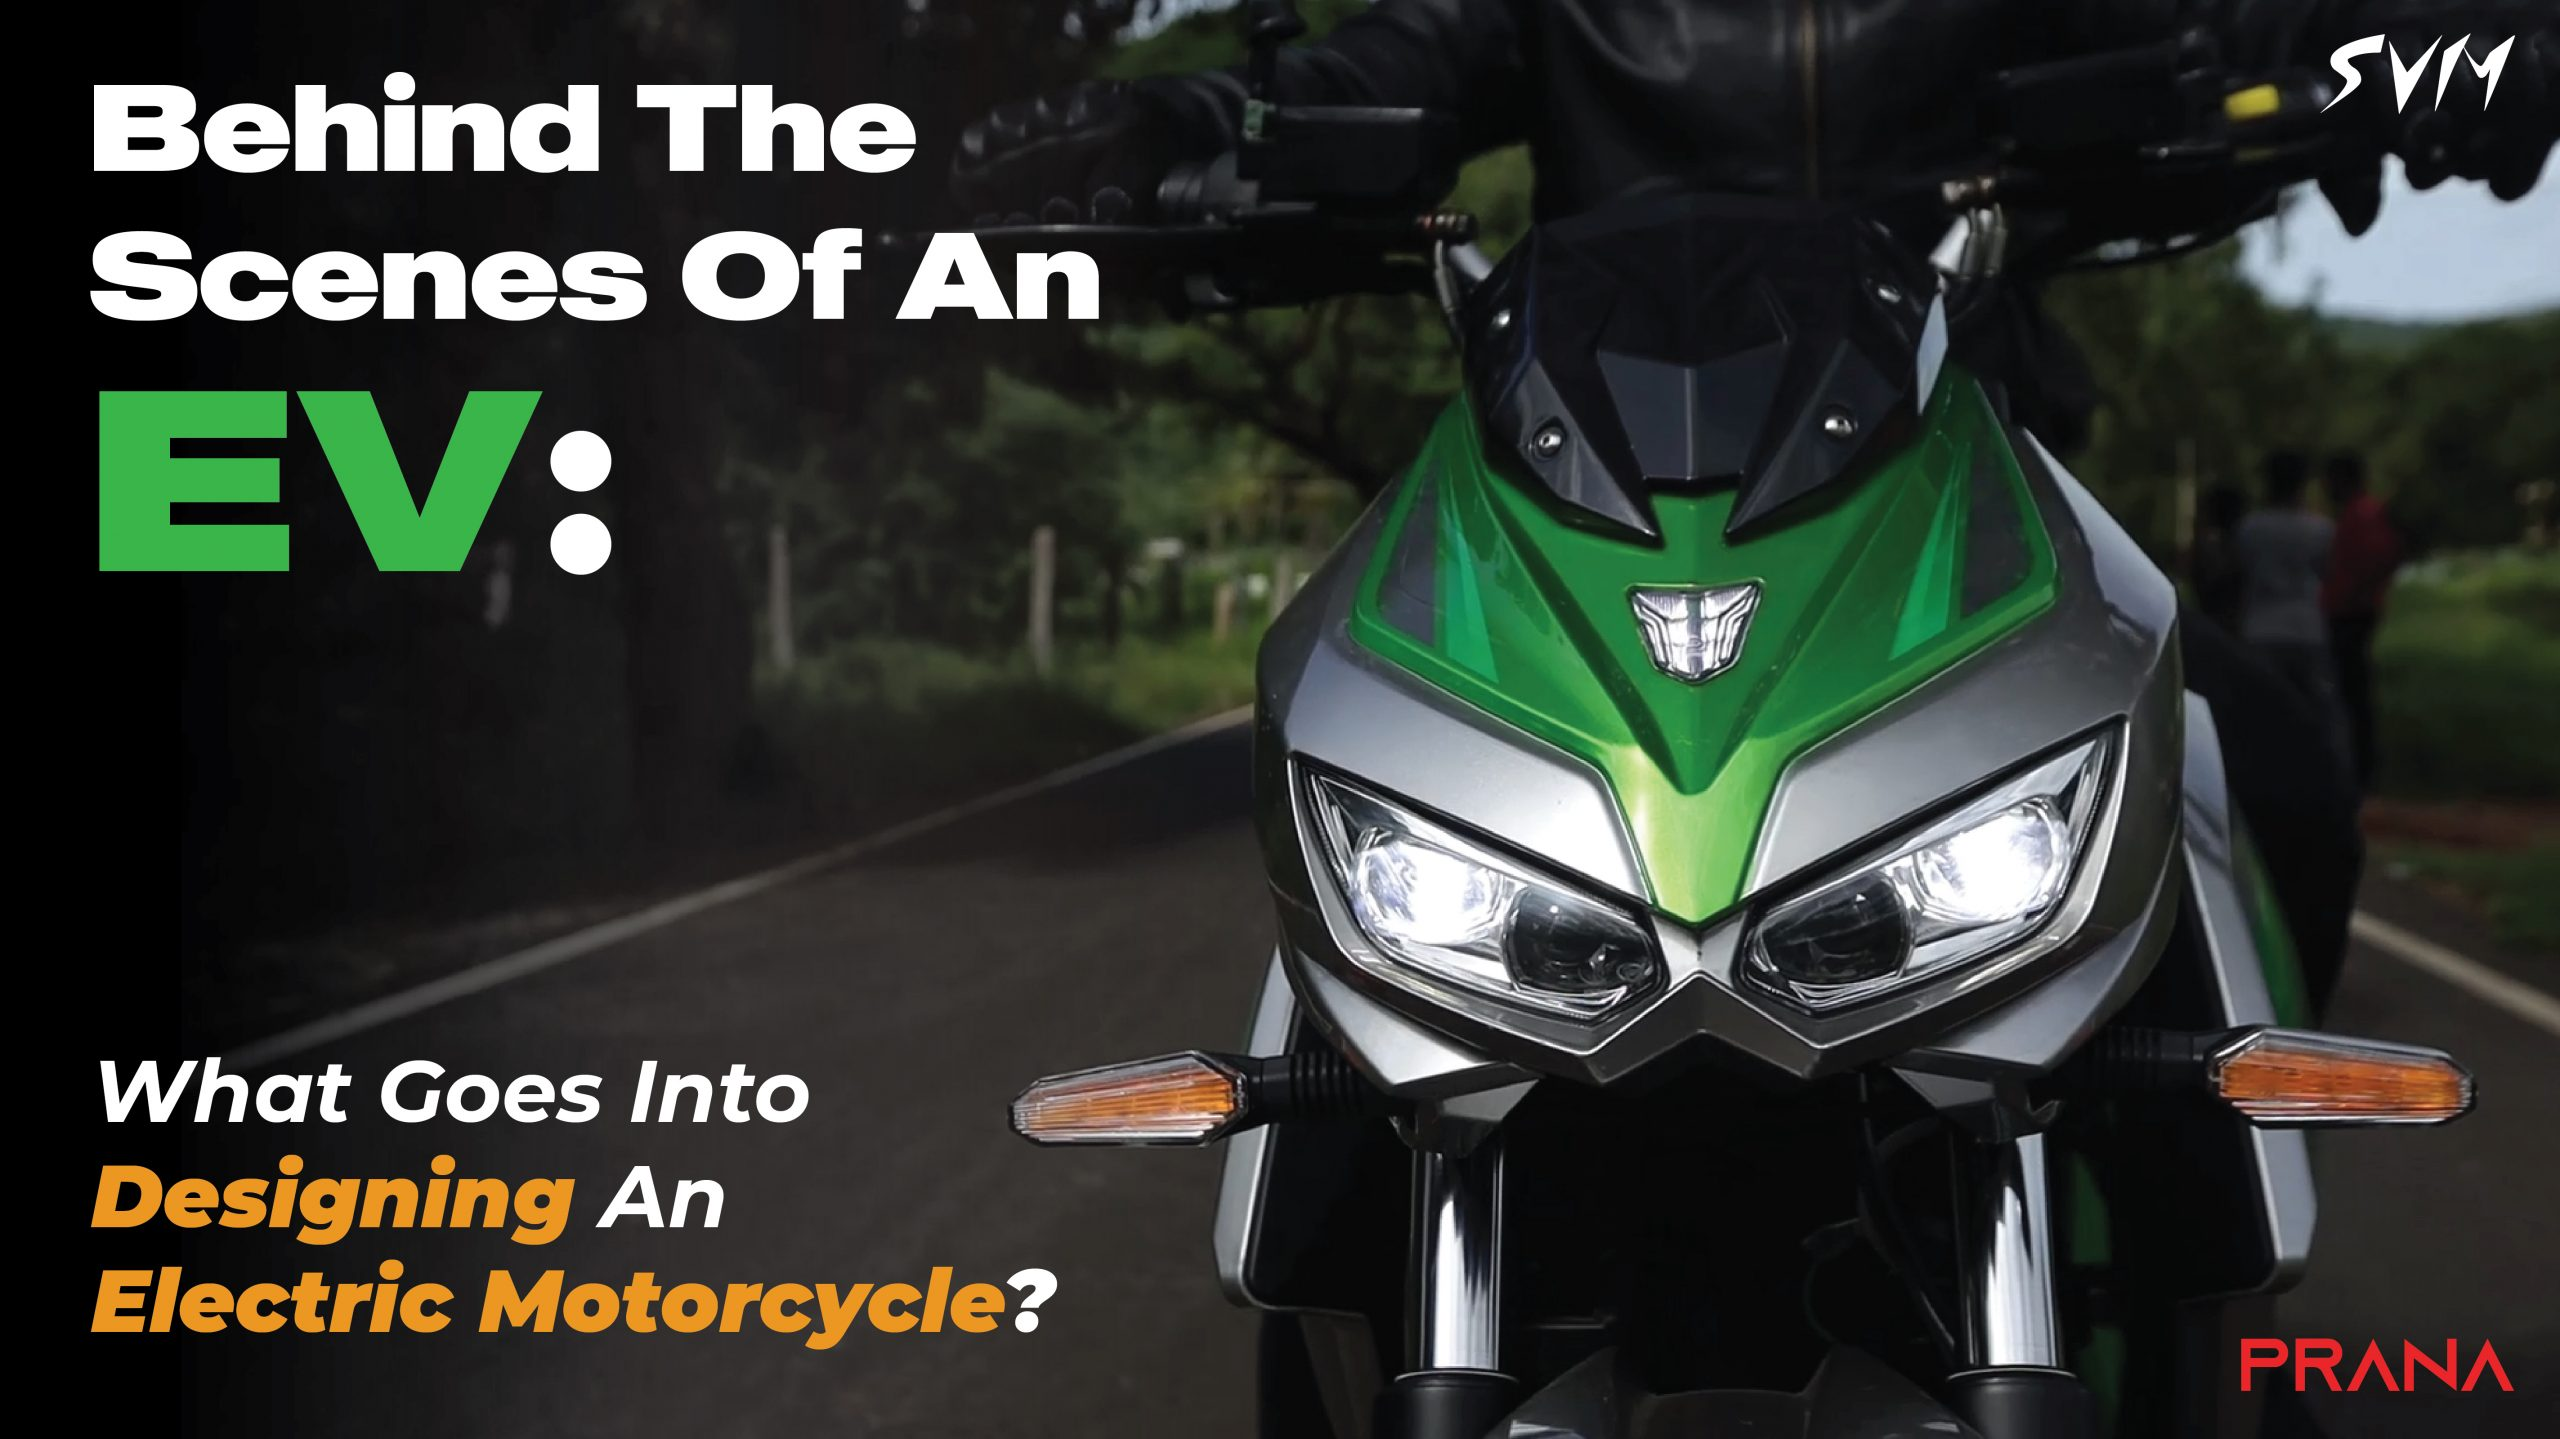 Behind The Scenes Of An EV: What Goes Into Designing An Electric Motorcycle?